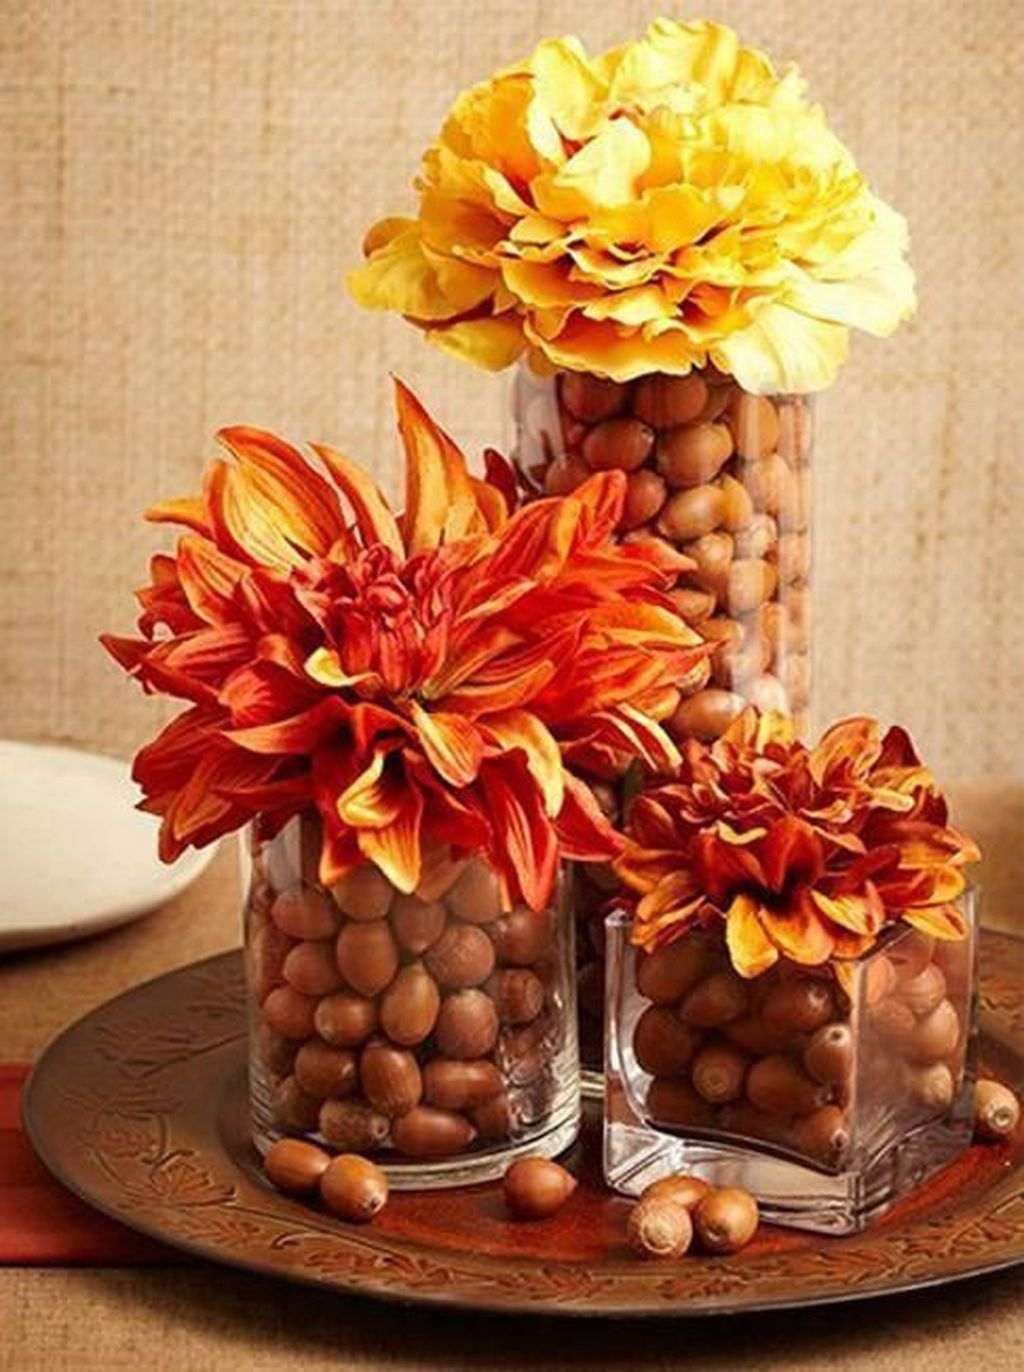 50 DIY Thanksgiving Crafts For The Whole Family